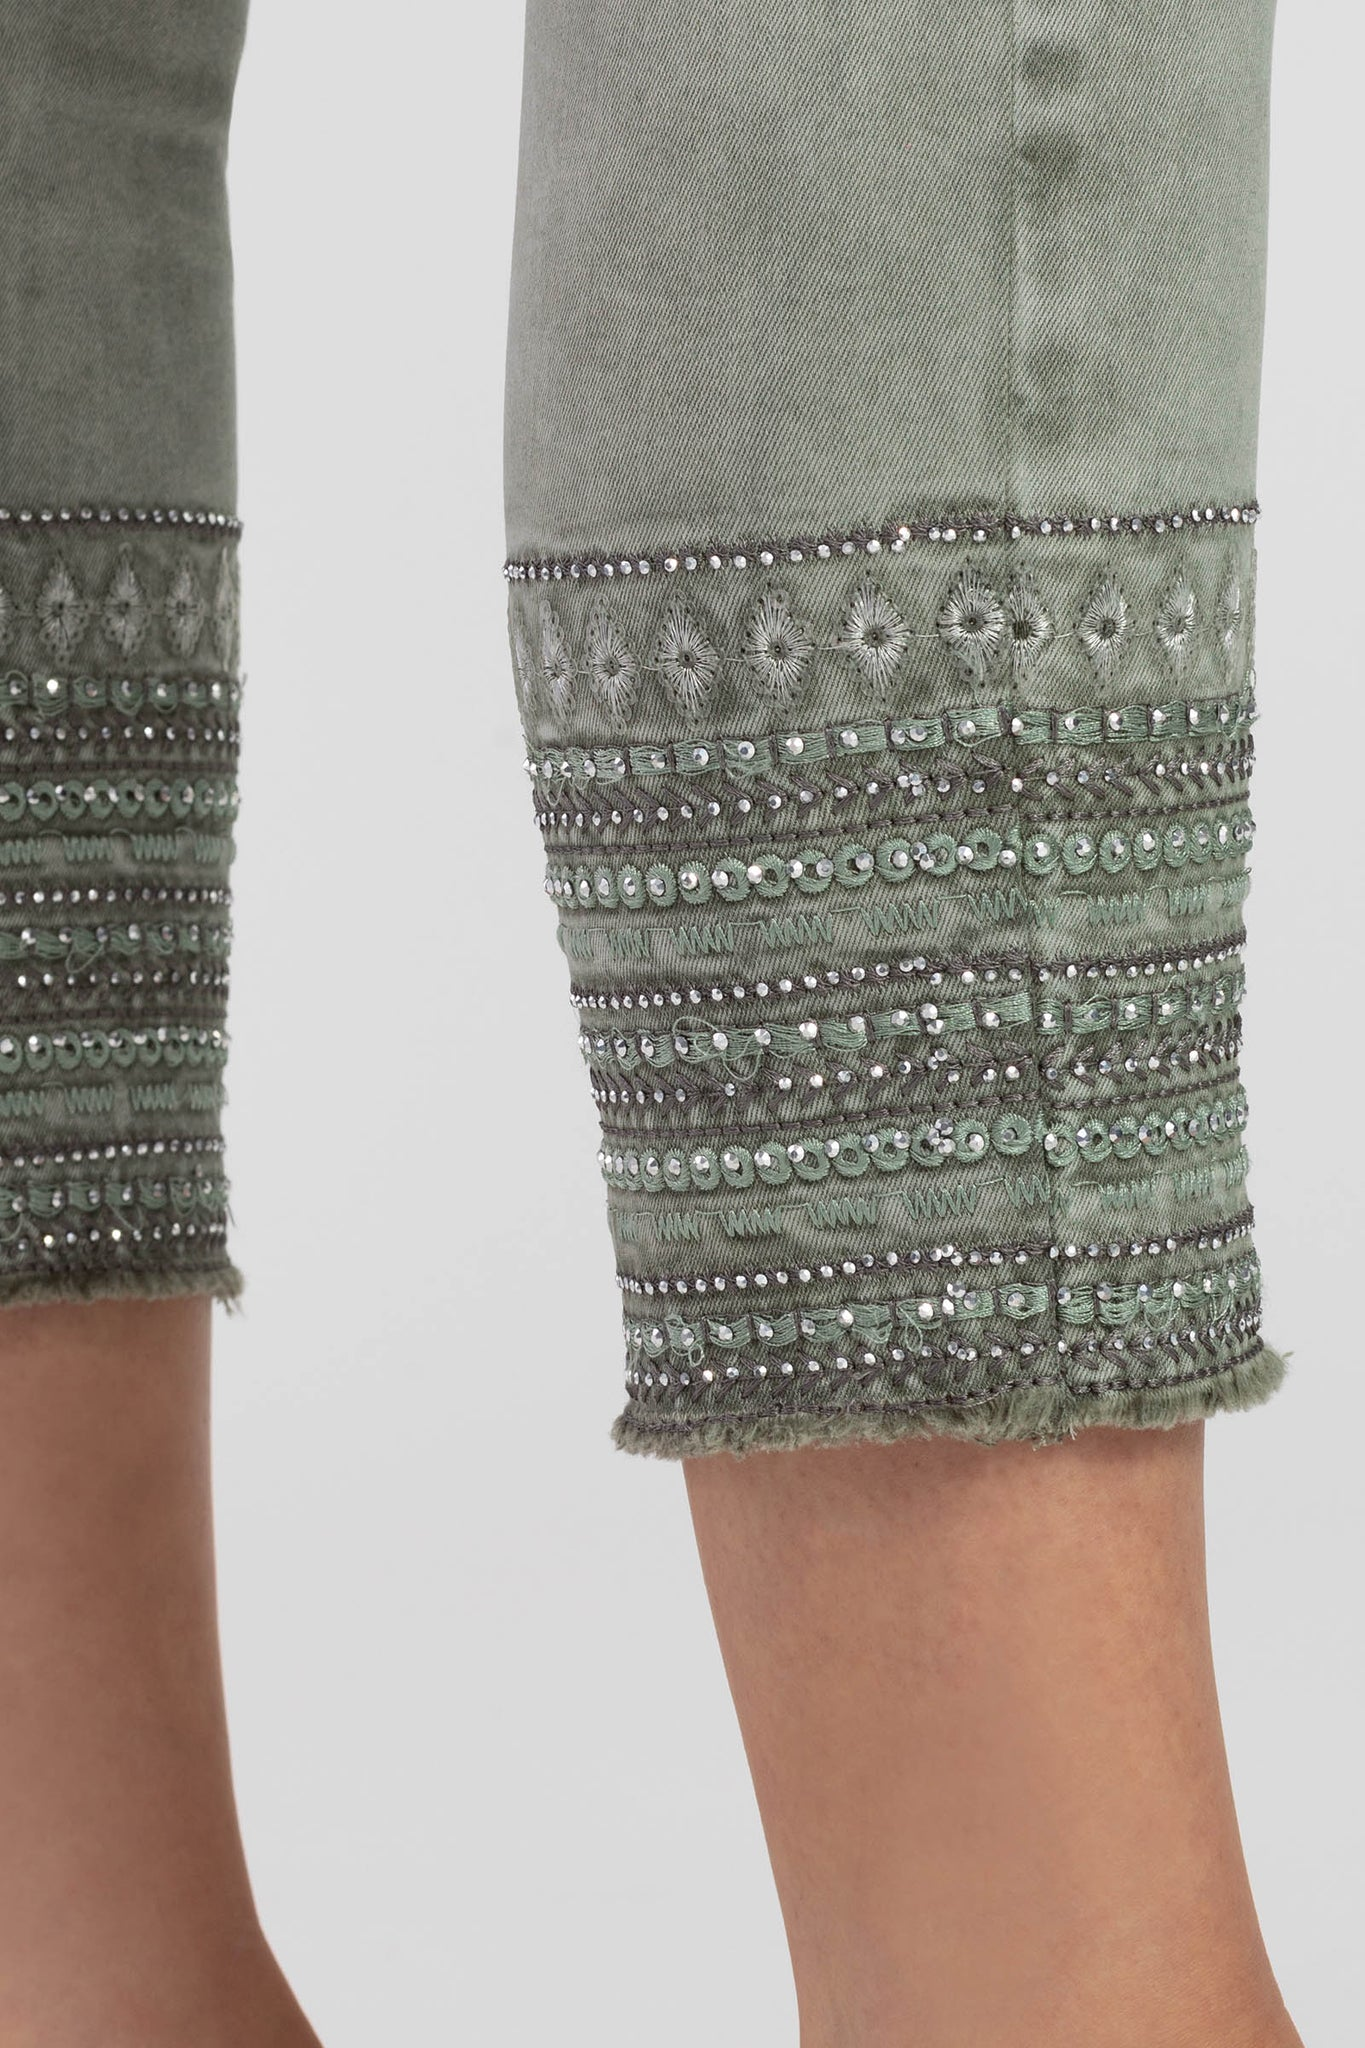 Tribal Pull-On Ankle Jegging w/ Embroidery at Hem